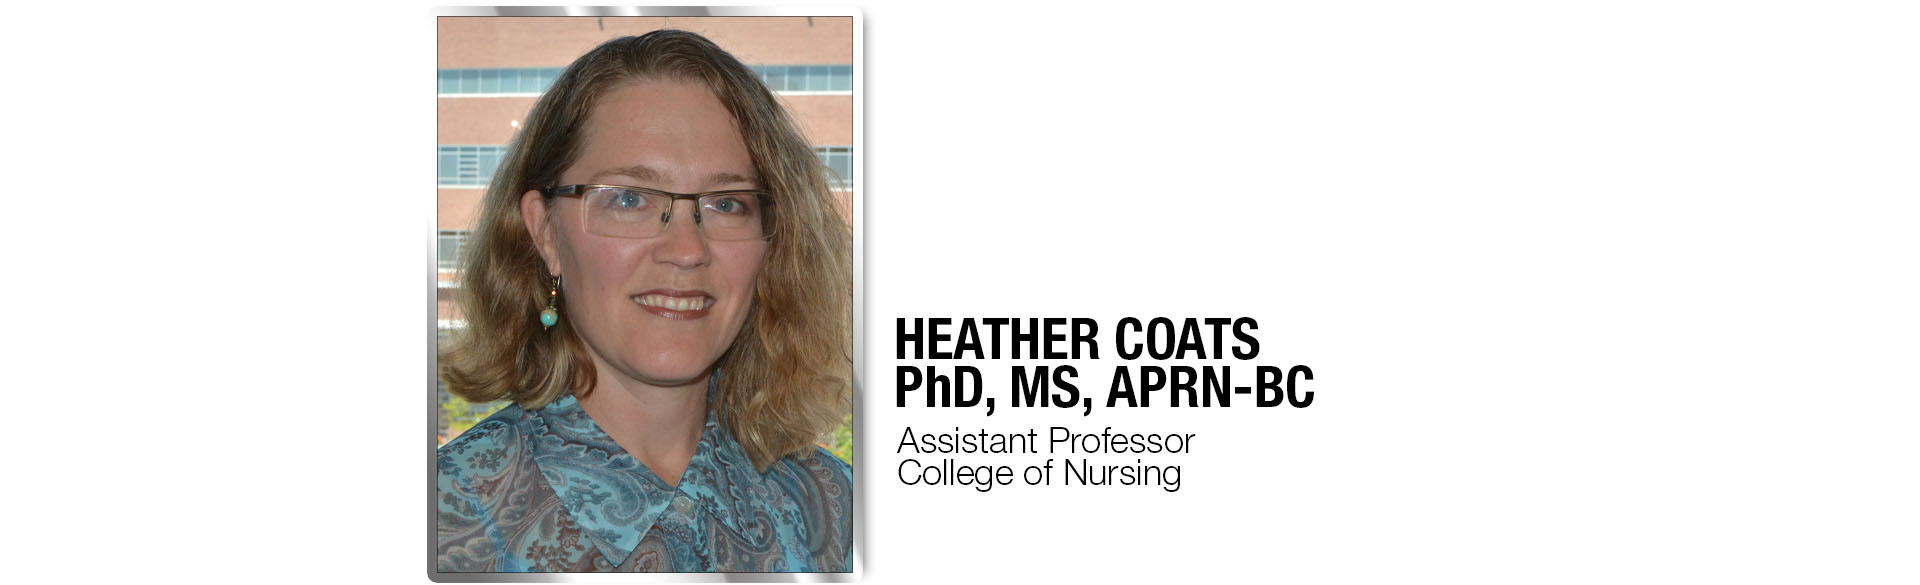 CU Nursing Assistant professor Heather Coats, PhD, MS, APRN-BC